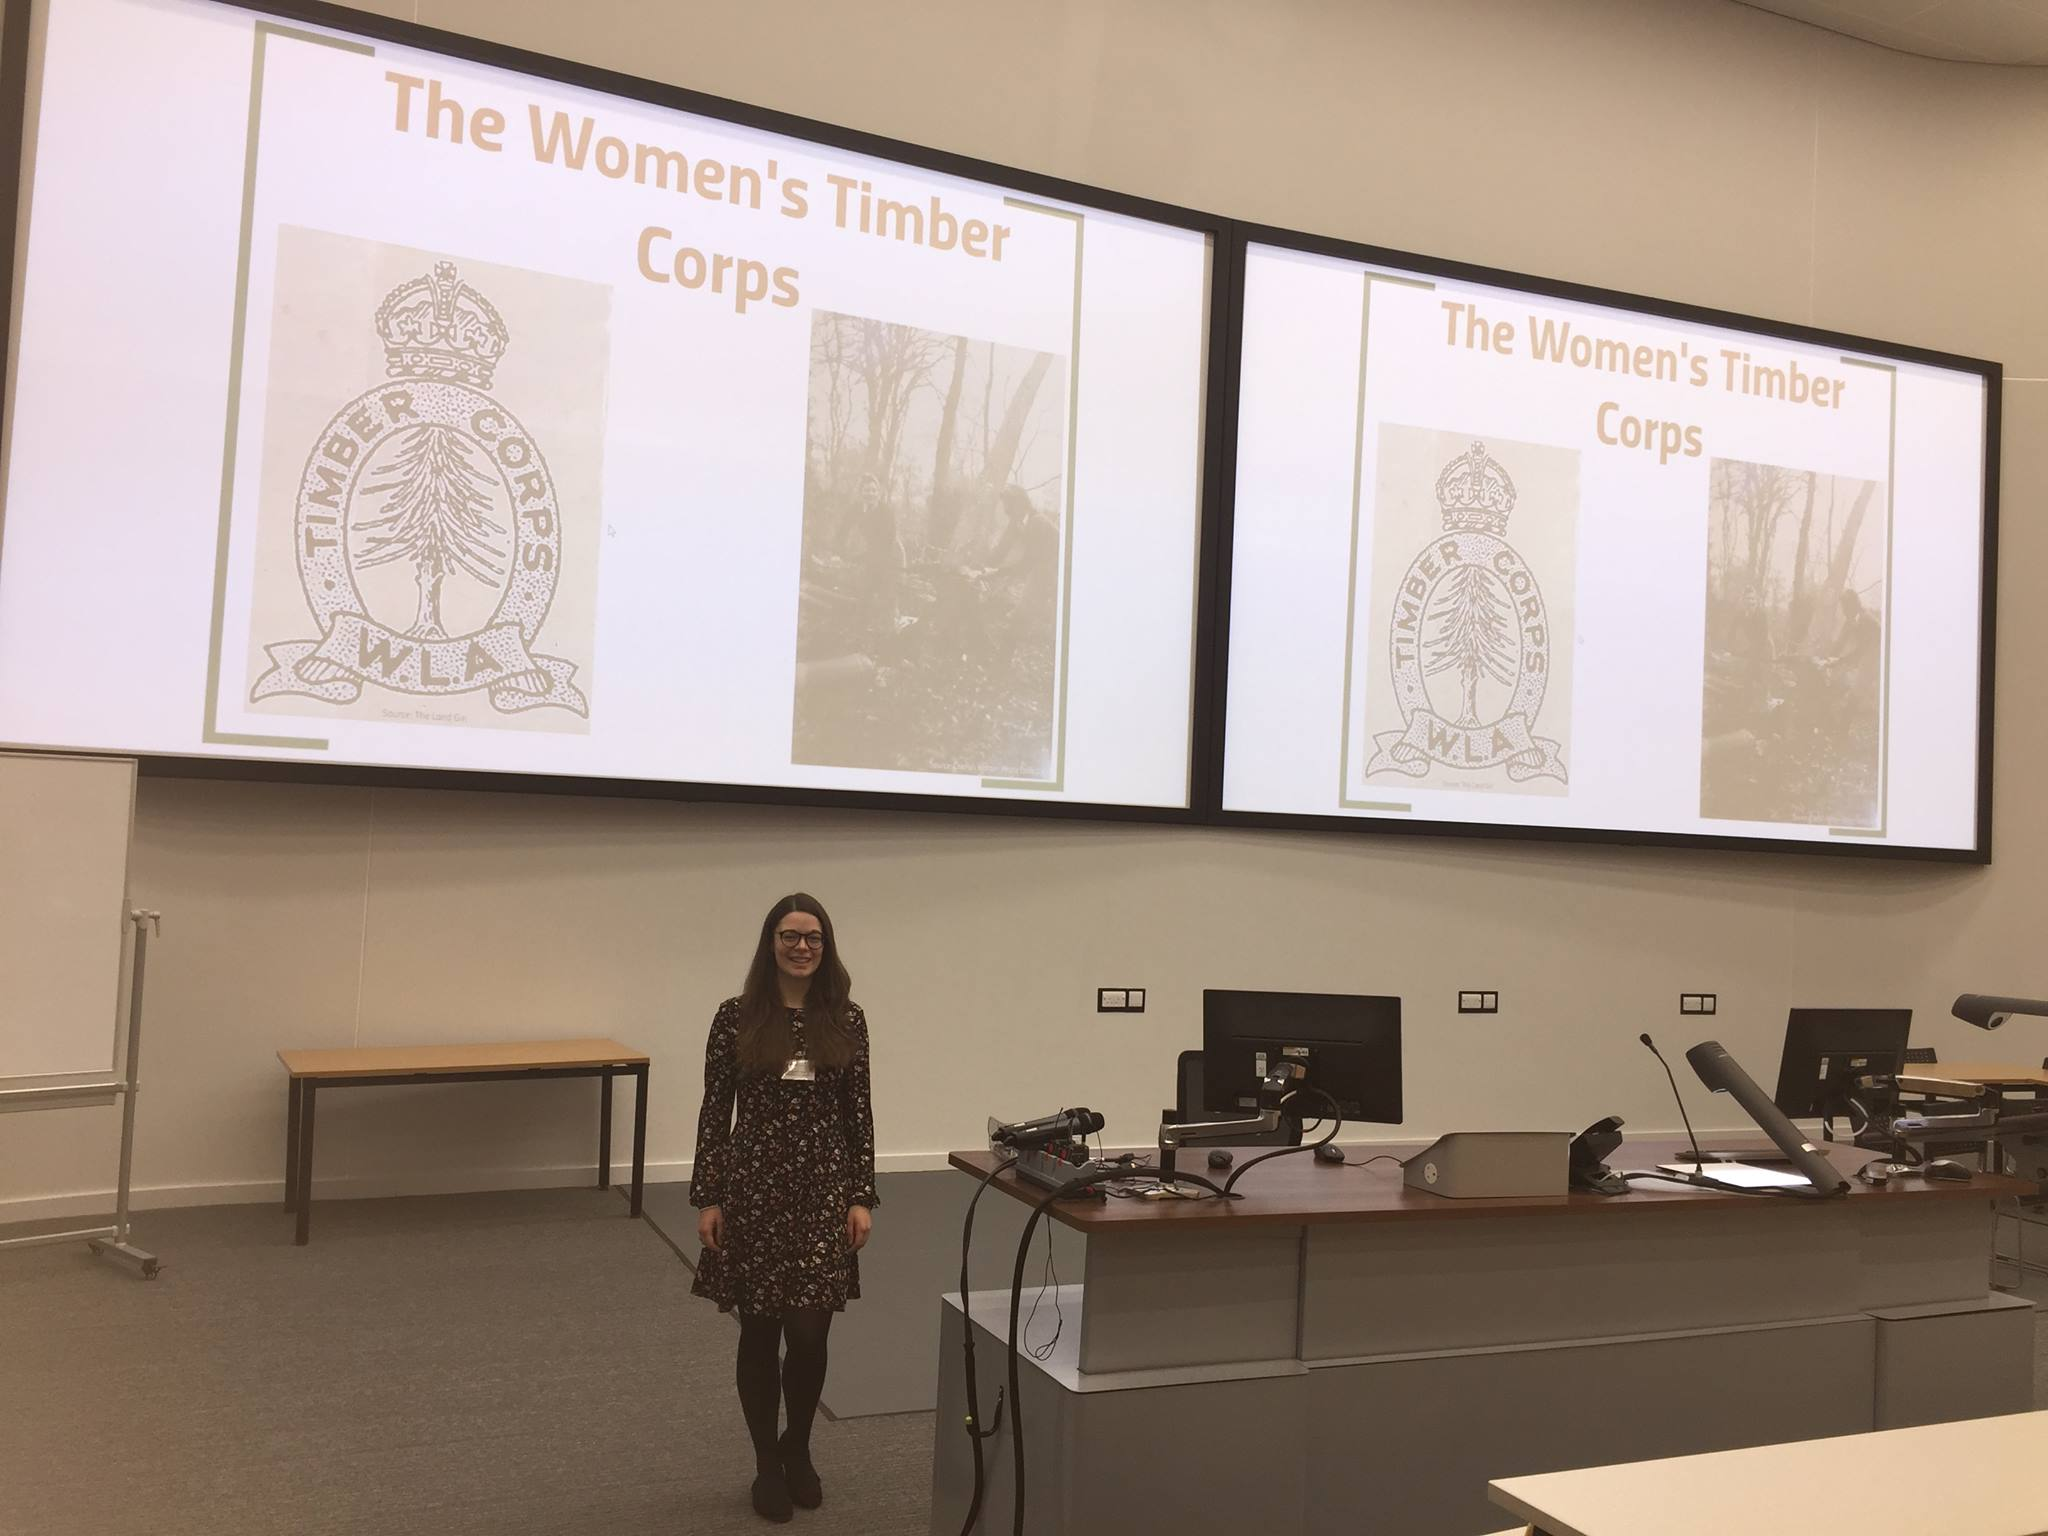 Cherish Watton presenting at the conference 'Bringing Conflict Home' at the University of York in May 2017.